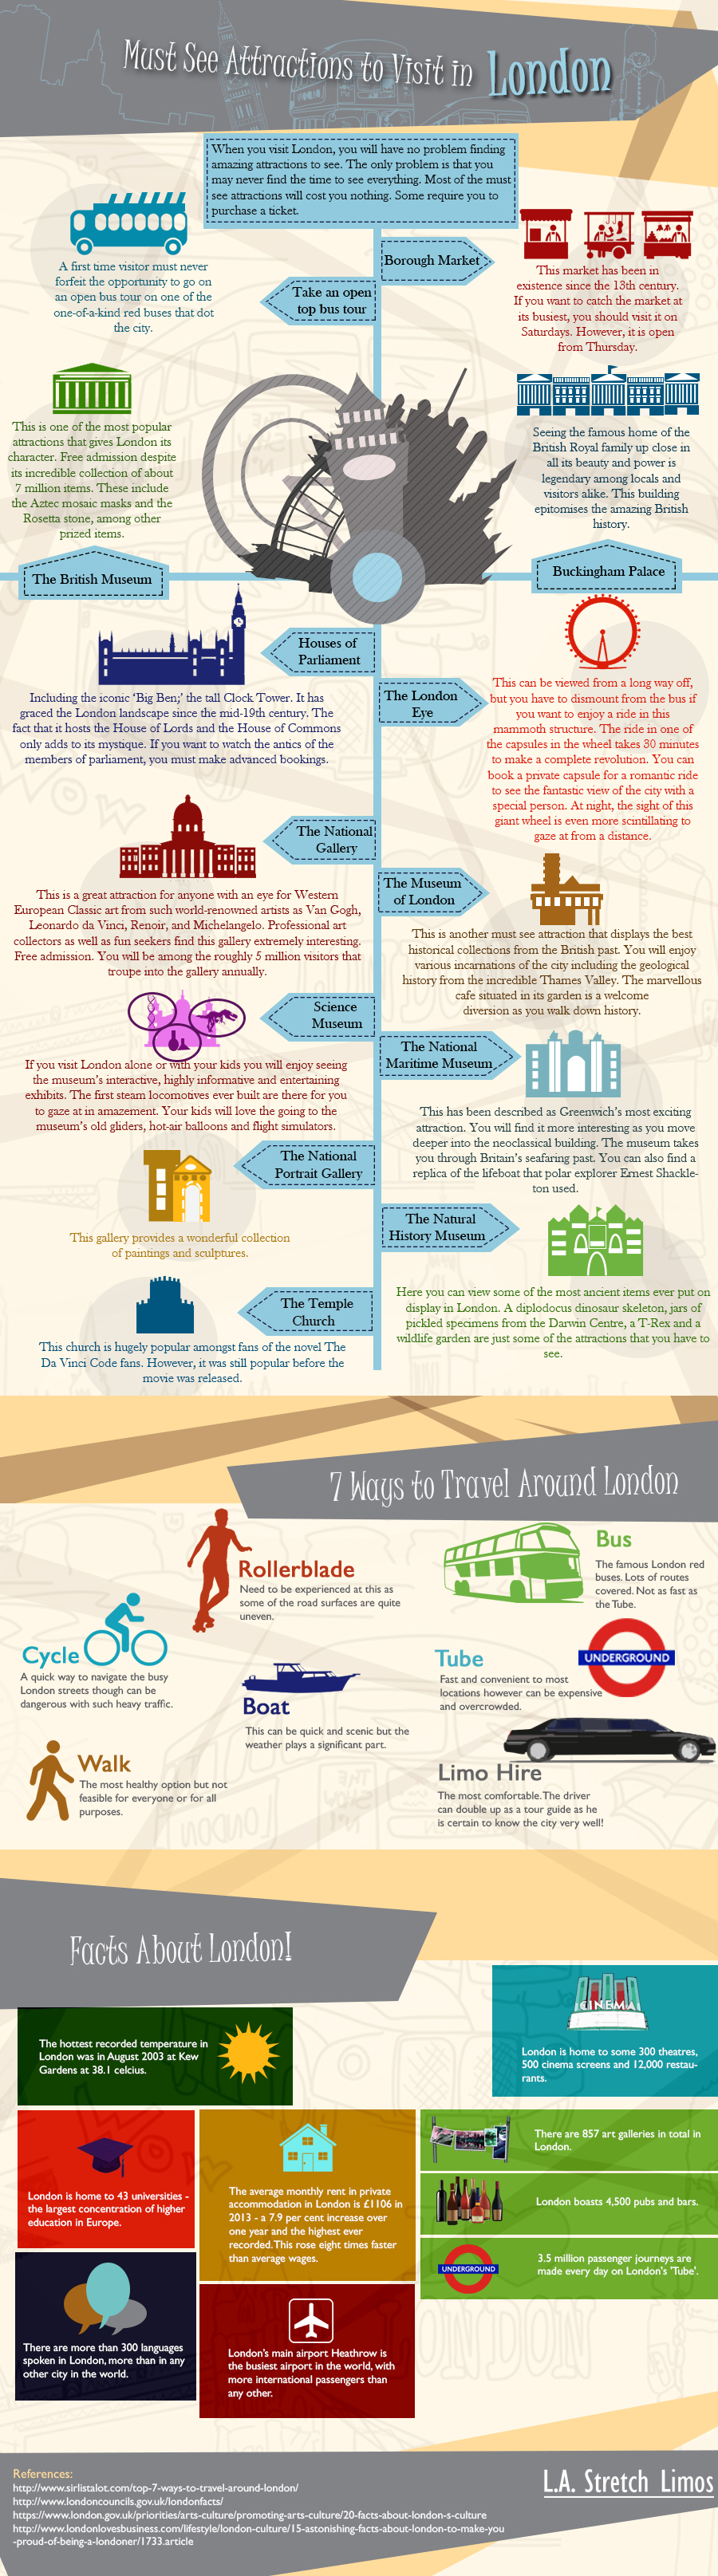 Top Destinations in London